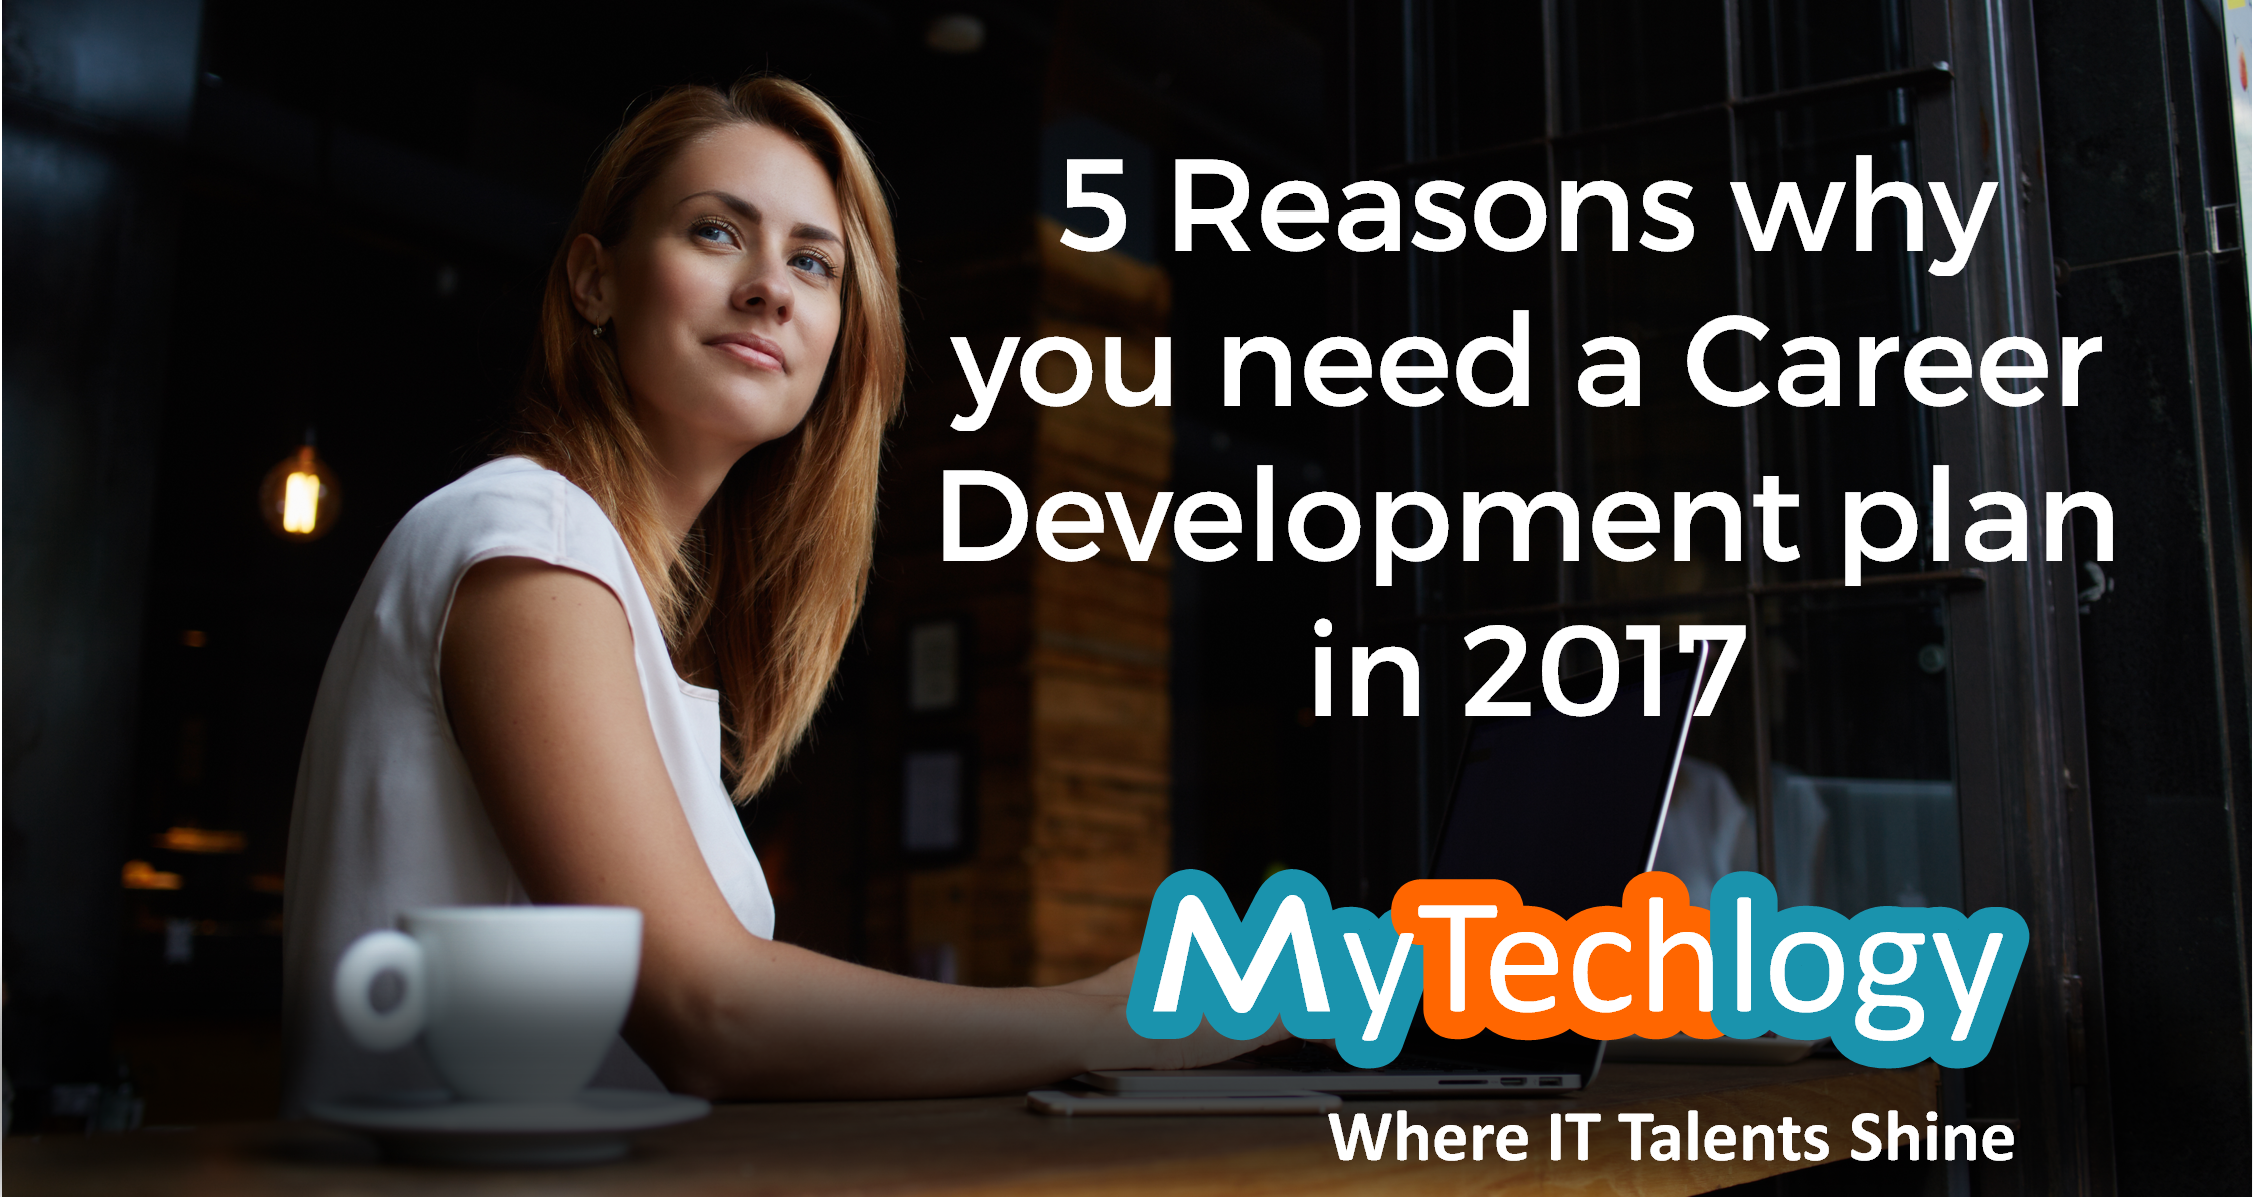 5 Reasons Why You Need A Career Development Plan in 2017 - Image 1